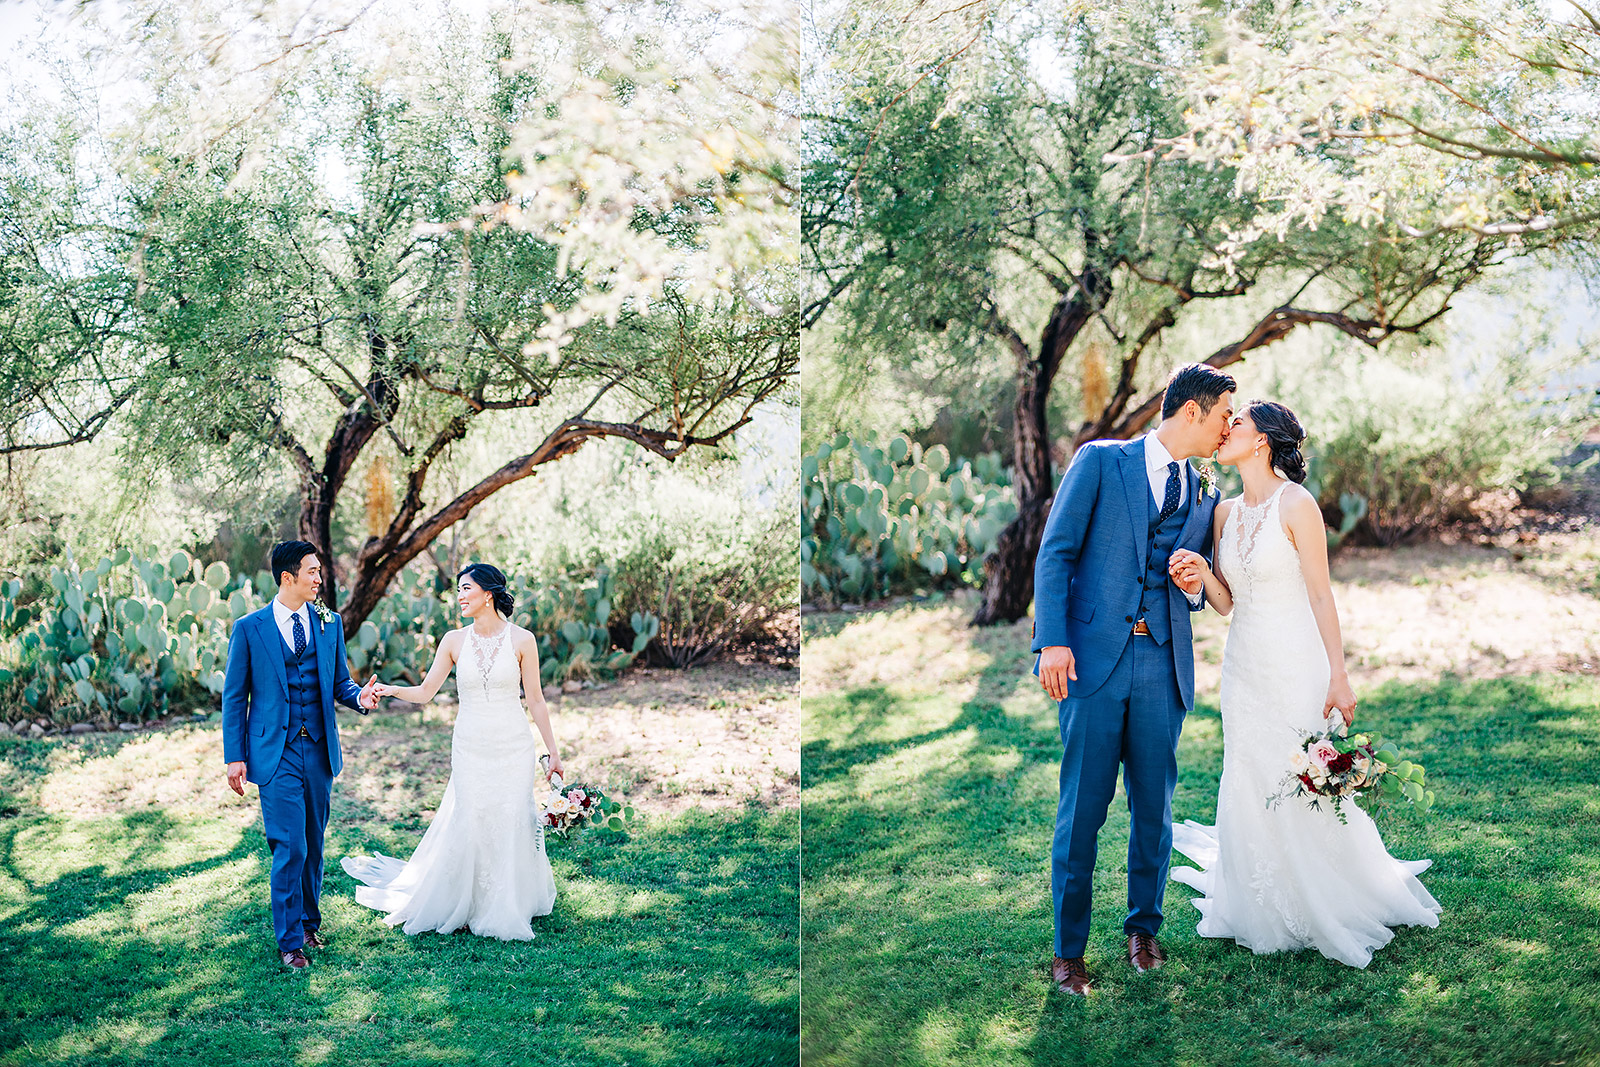 Bride and Groom walking and kissing in grassy area at the Saguaro Lake Ranch